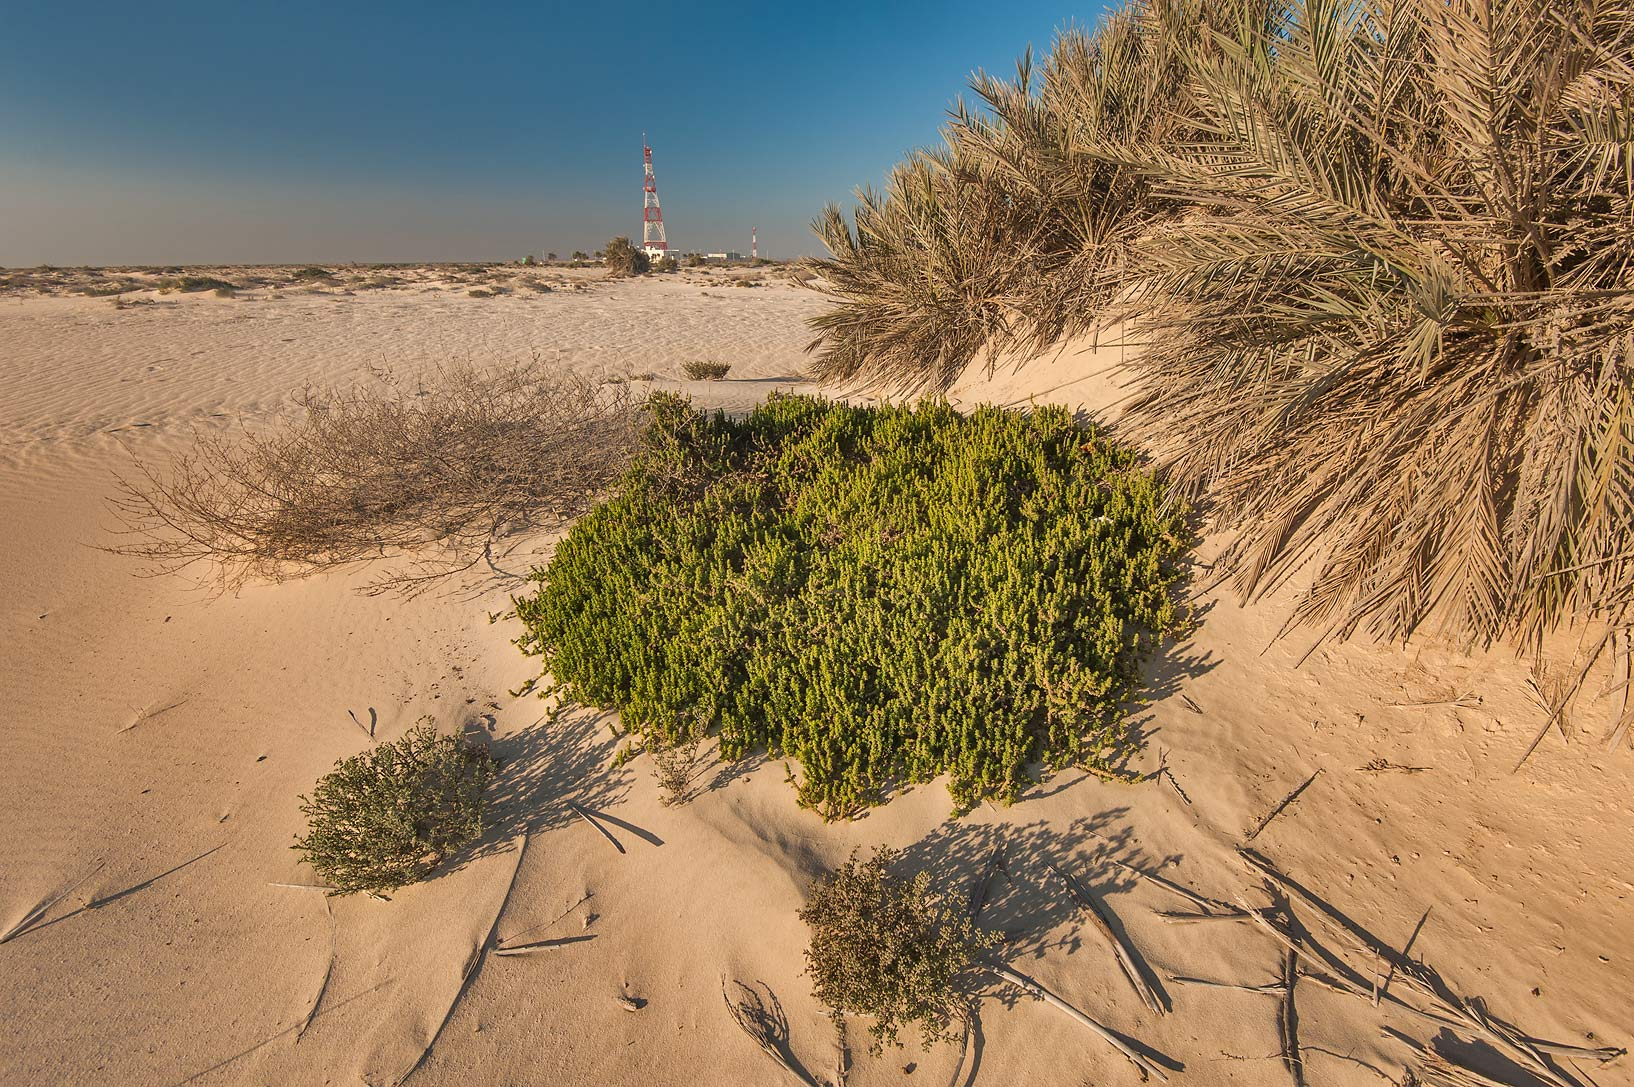 Plant of Suaeda aegyptiaca near a beach in the...Well near Umm Bab. South-western Qatar